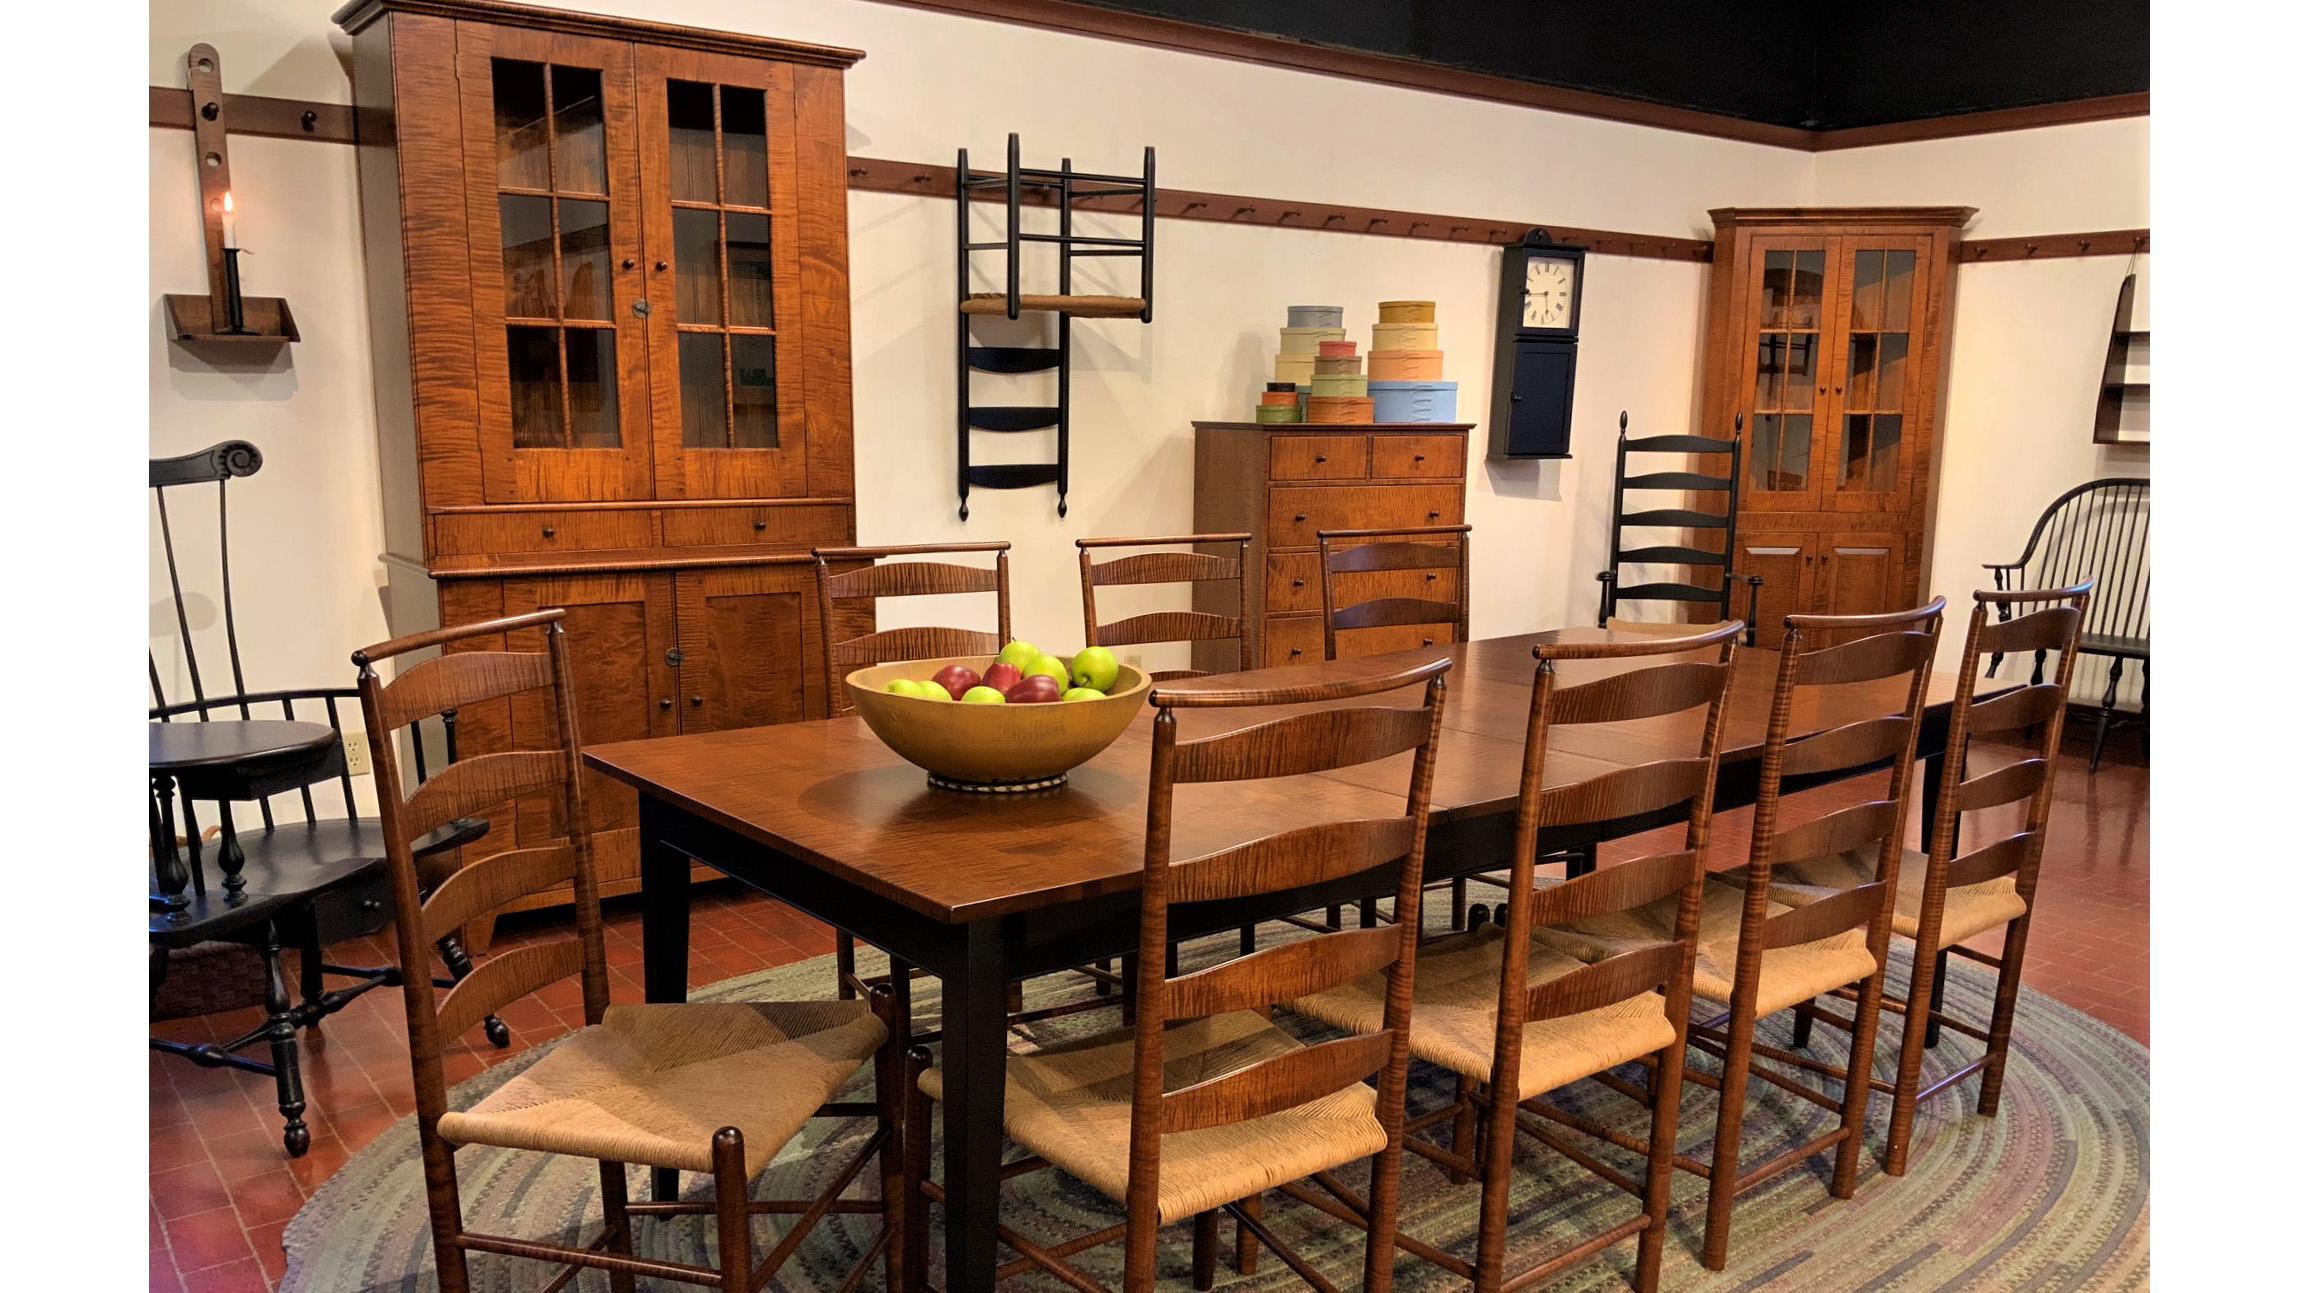 Authentic Reproduction Shaker Furniture Hand Made In The Usa